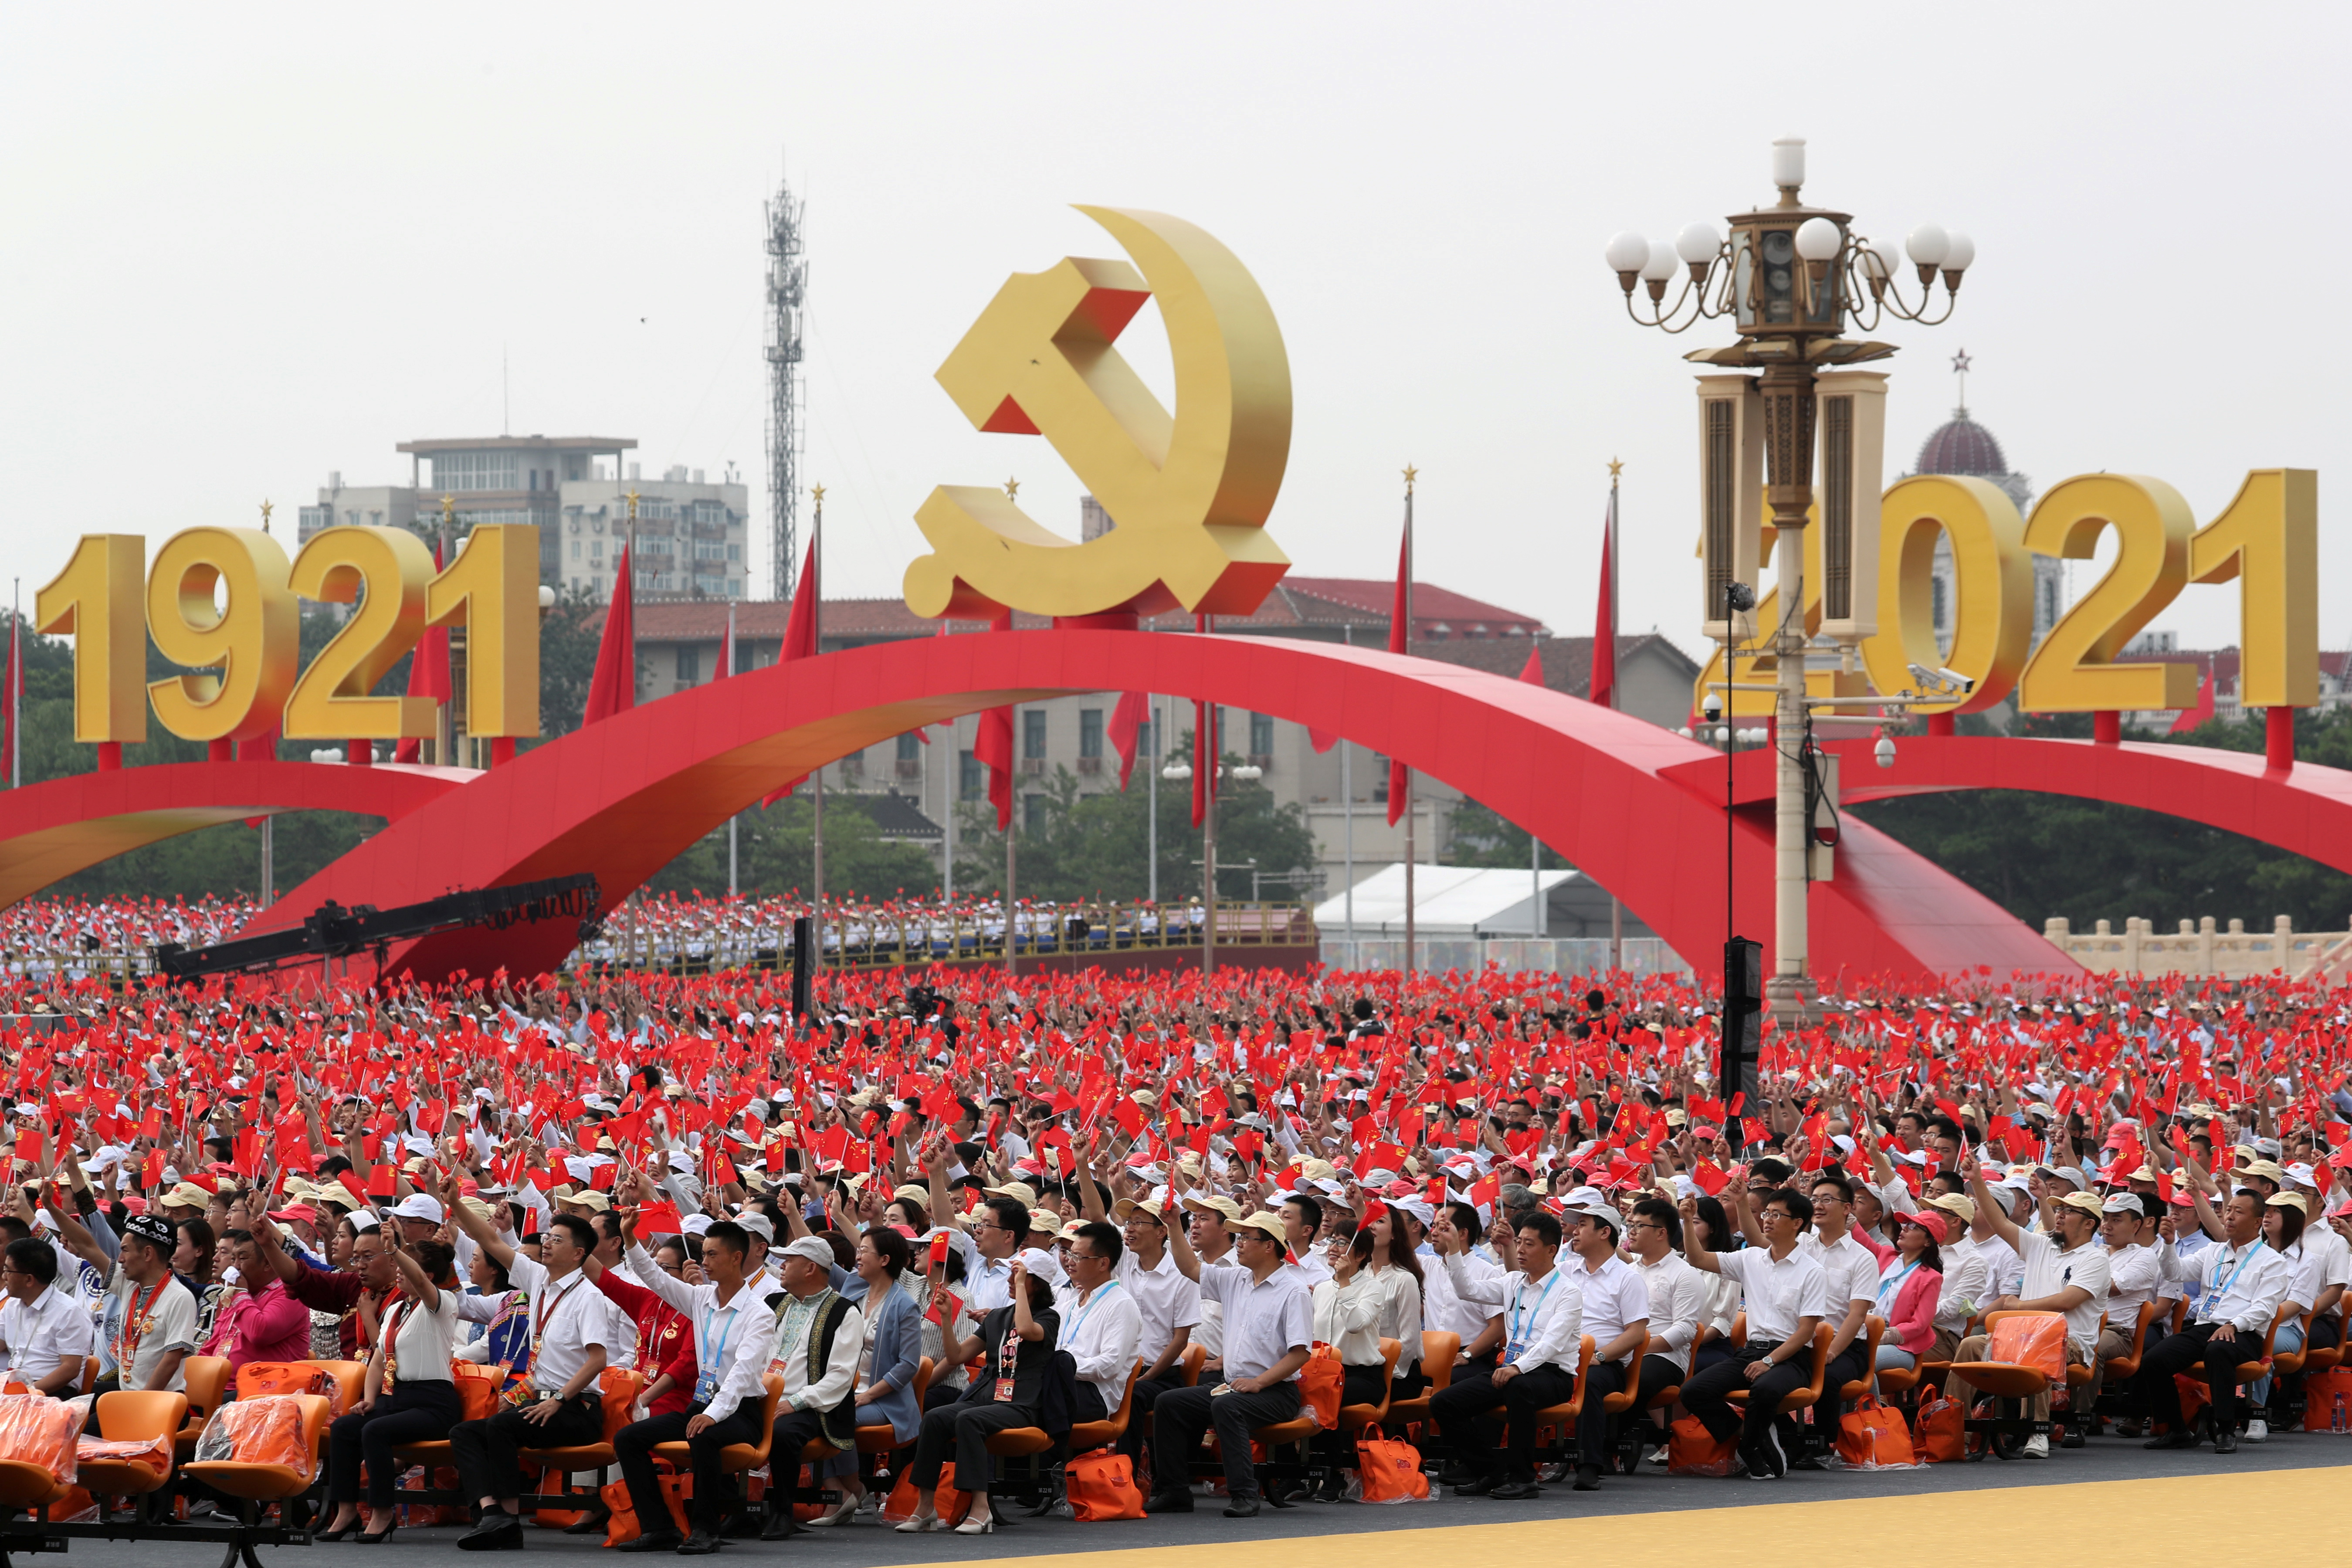 Participants wave national and party flags before the event marking the 100th founding anniversary of the Communist Party of China, on Tiananmen Square in Beijing, China July 1, 2021. REUTERS/Carlos Garcia Rawlins